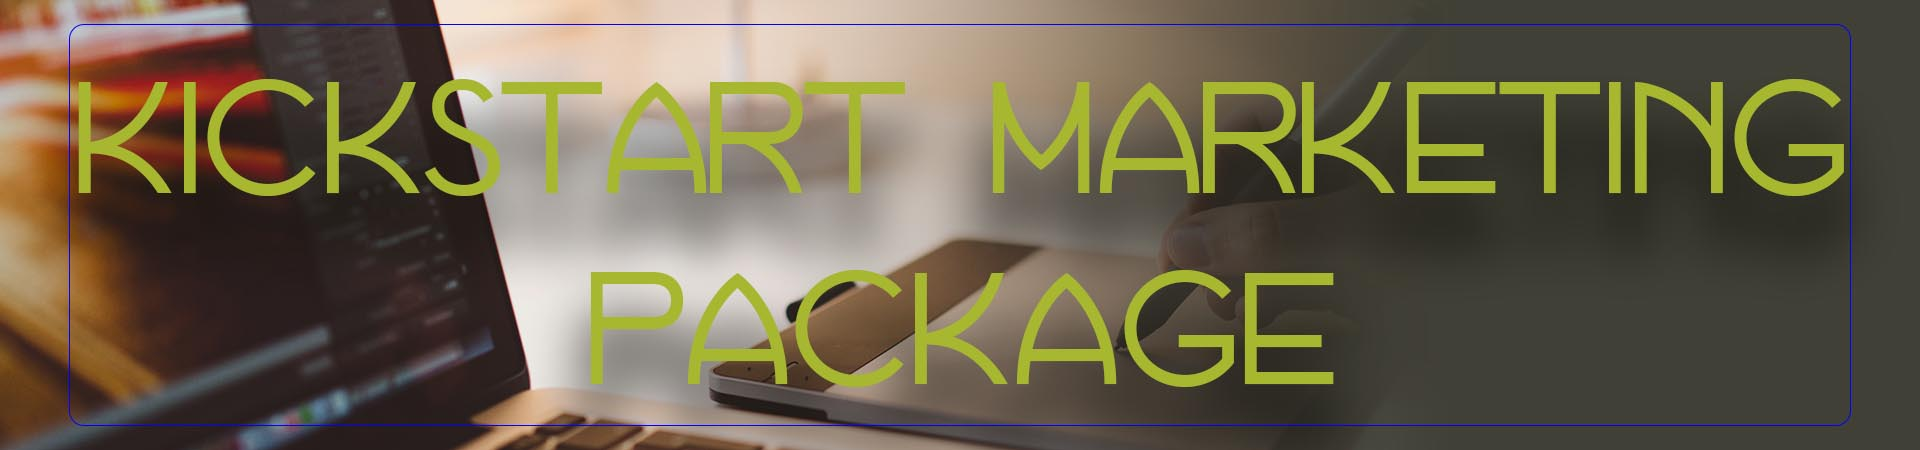 Kickstart marketing package | empower marketing